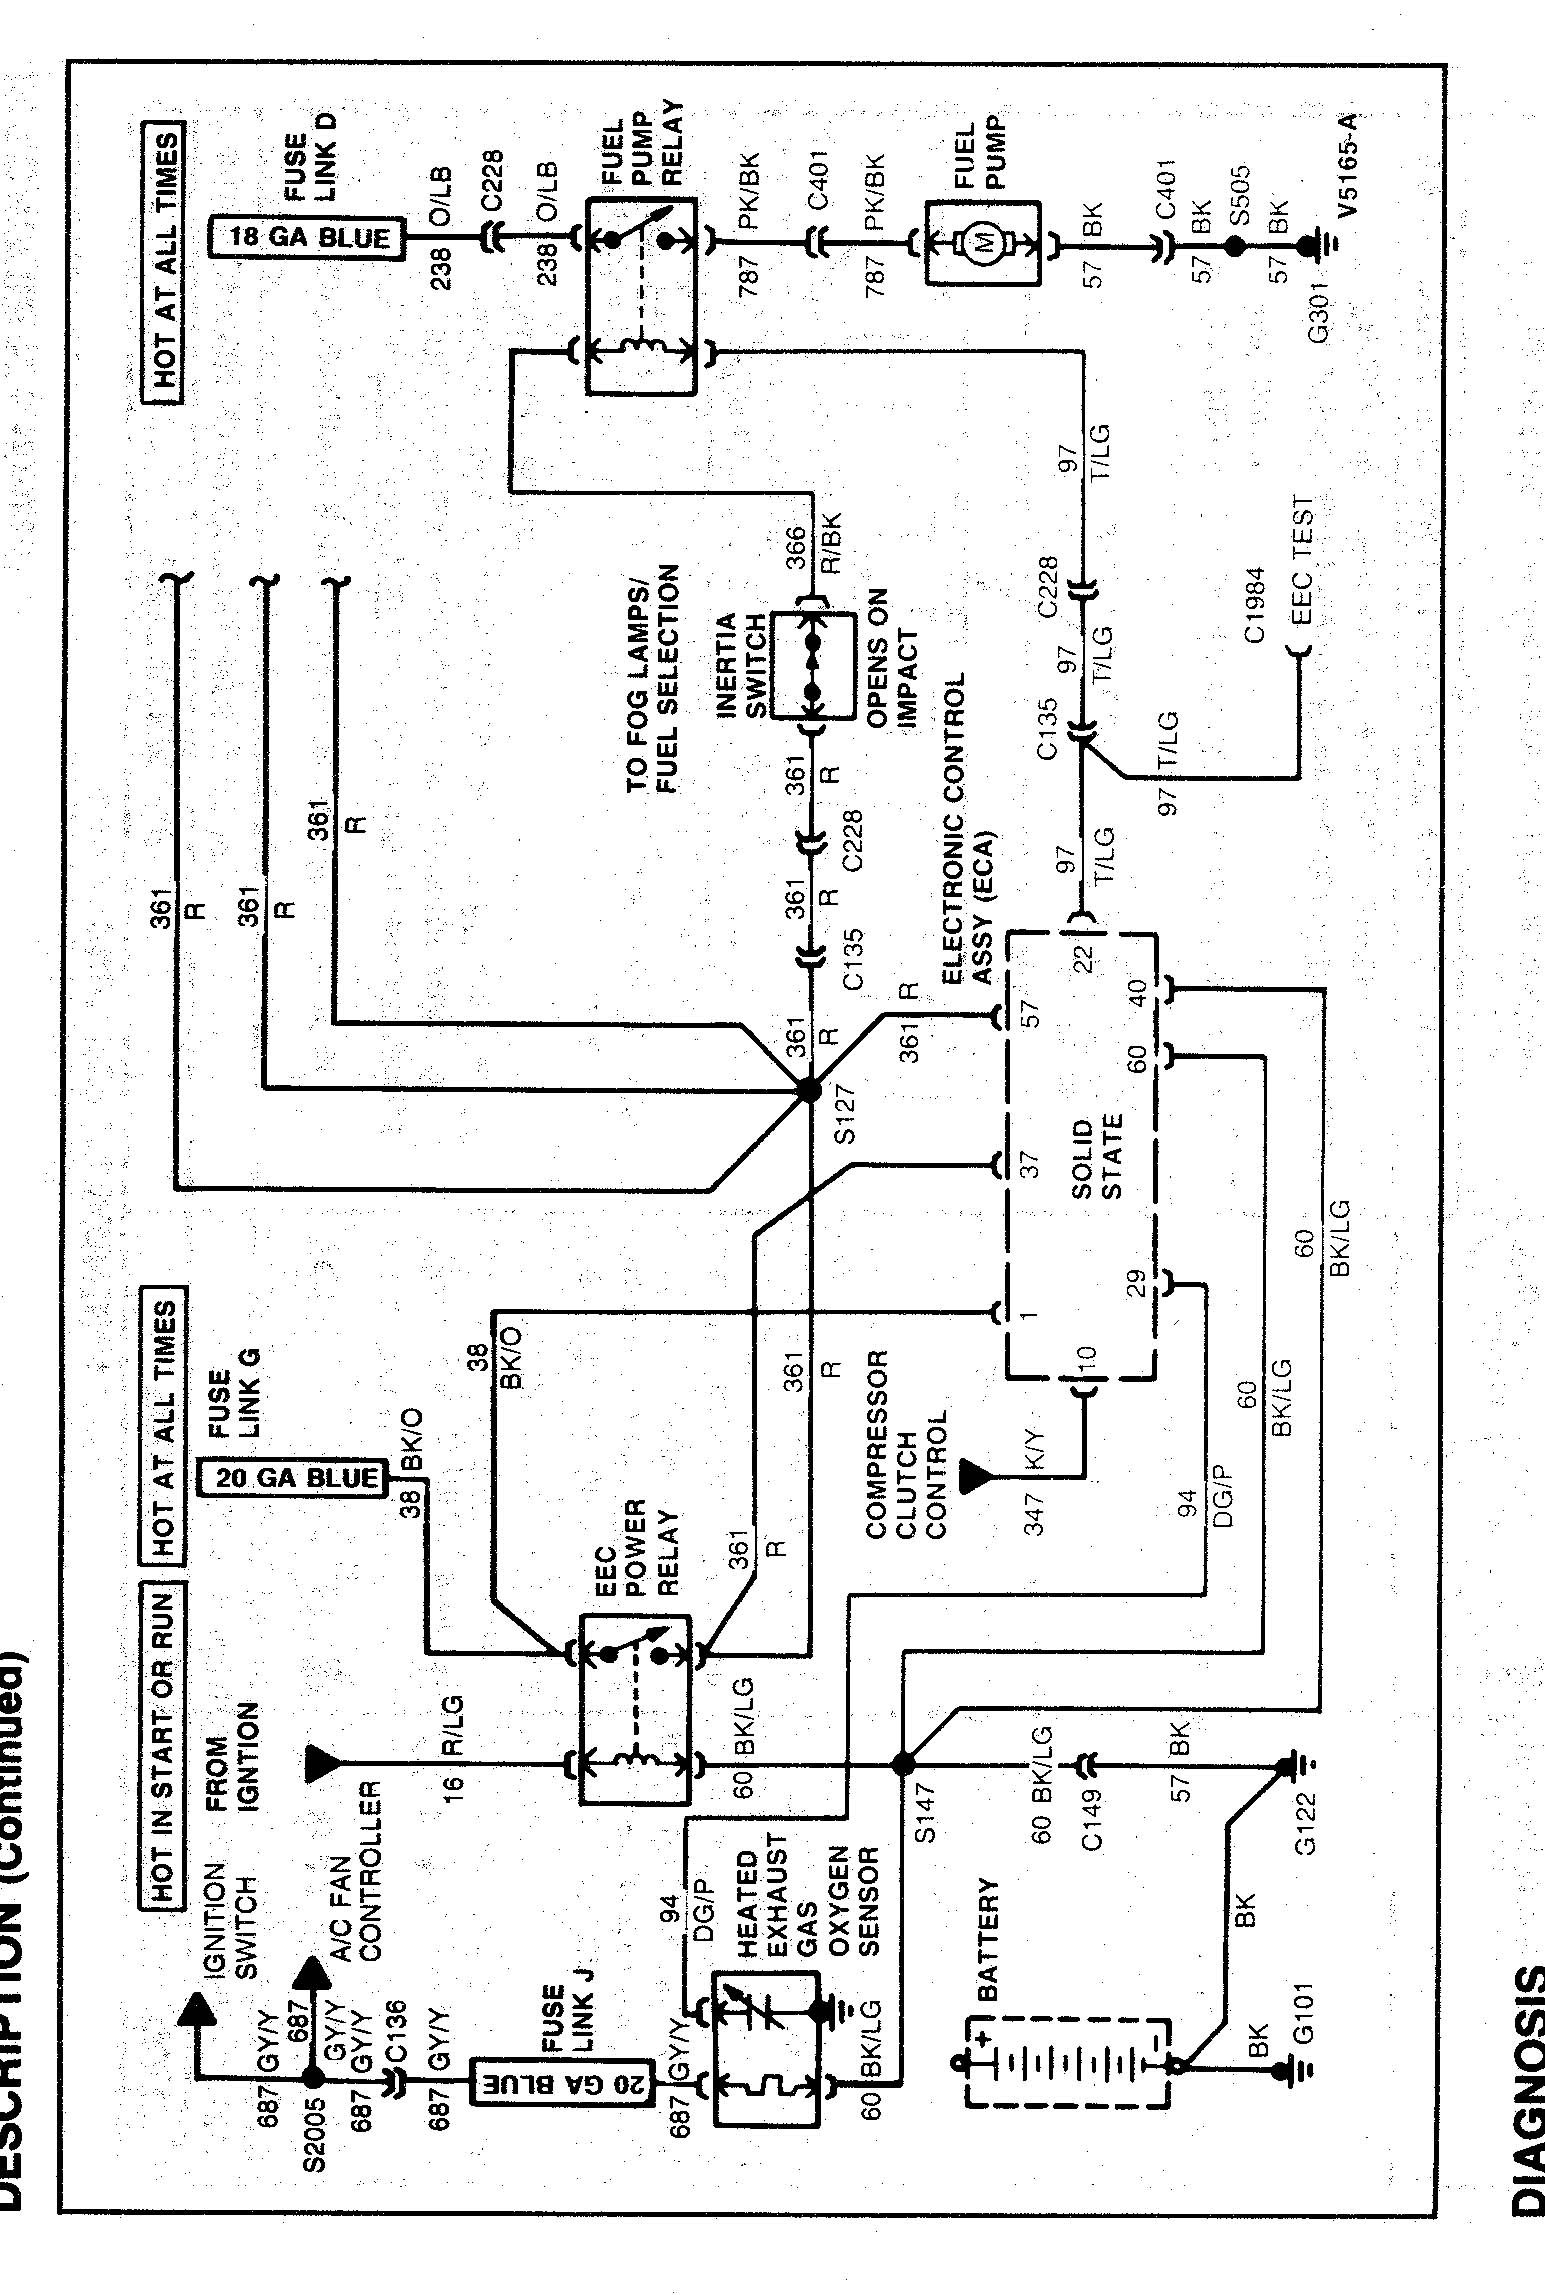 Ford Mustang Wiring Diagram Ford Wiring Diagram Images